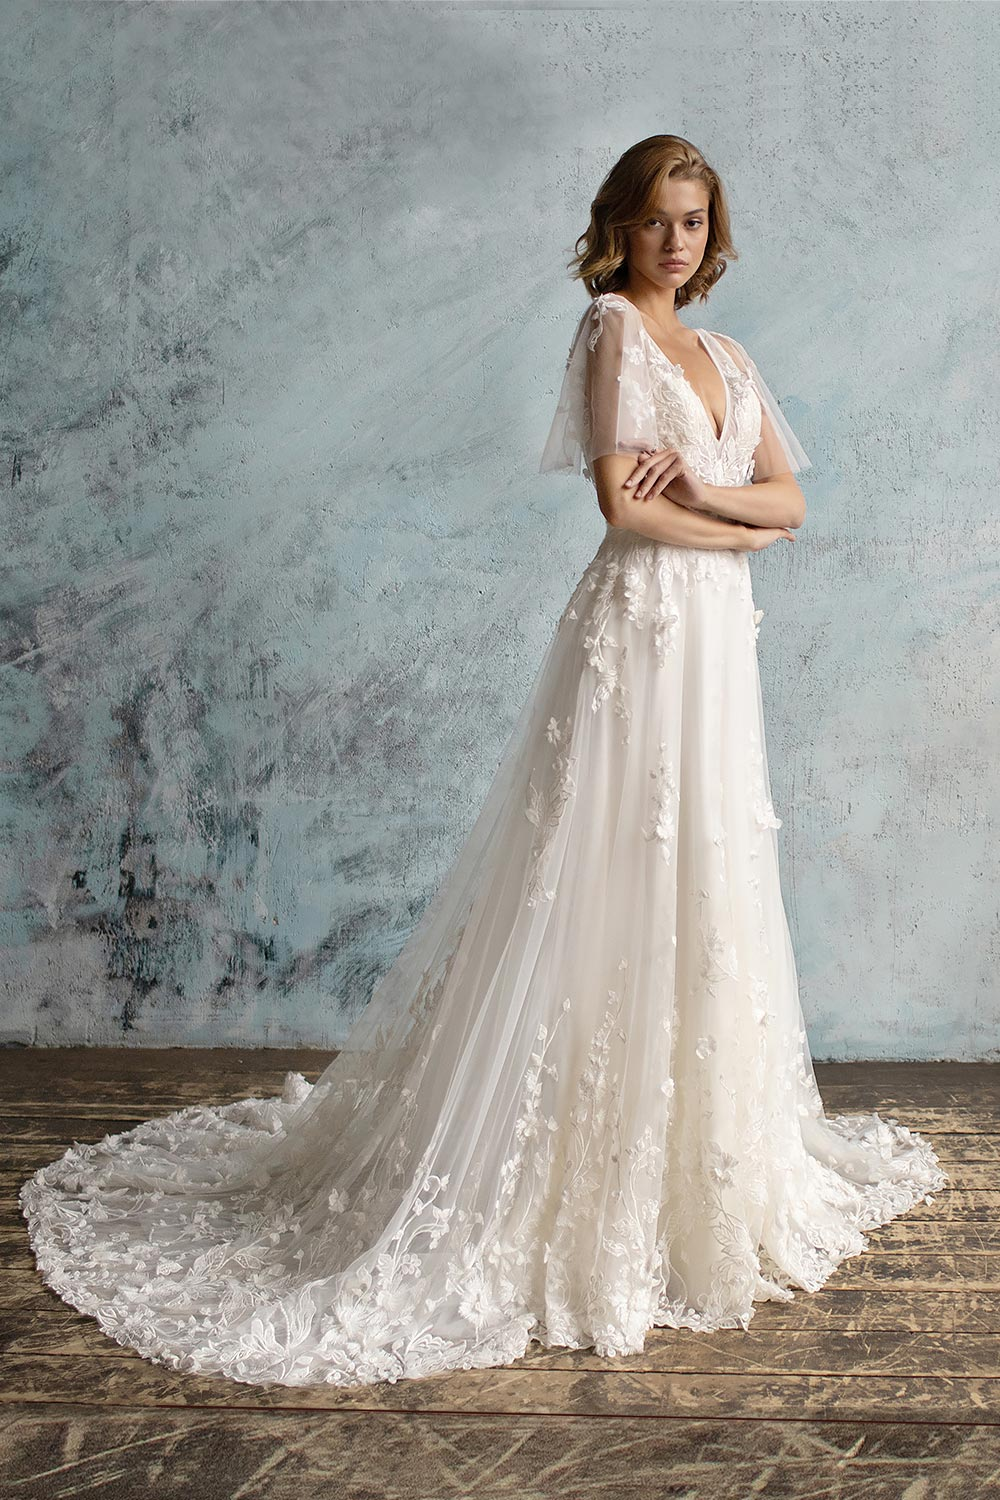 bridal shop near me wedding dress shop near me wedding dress near me wedding dress with sleeves 2